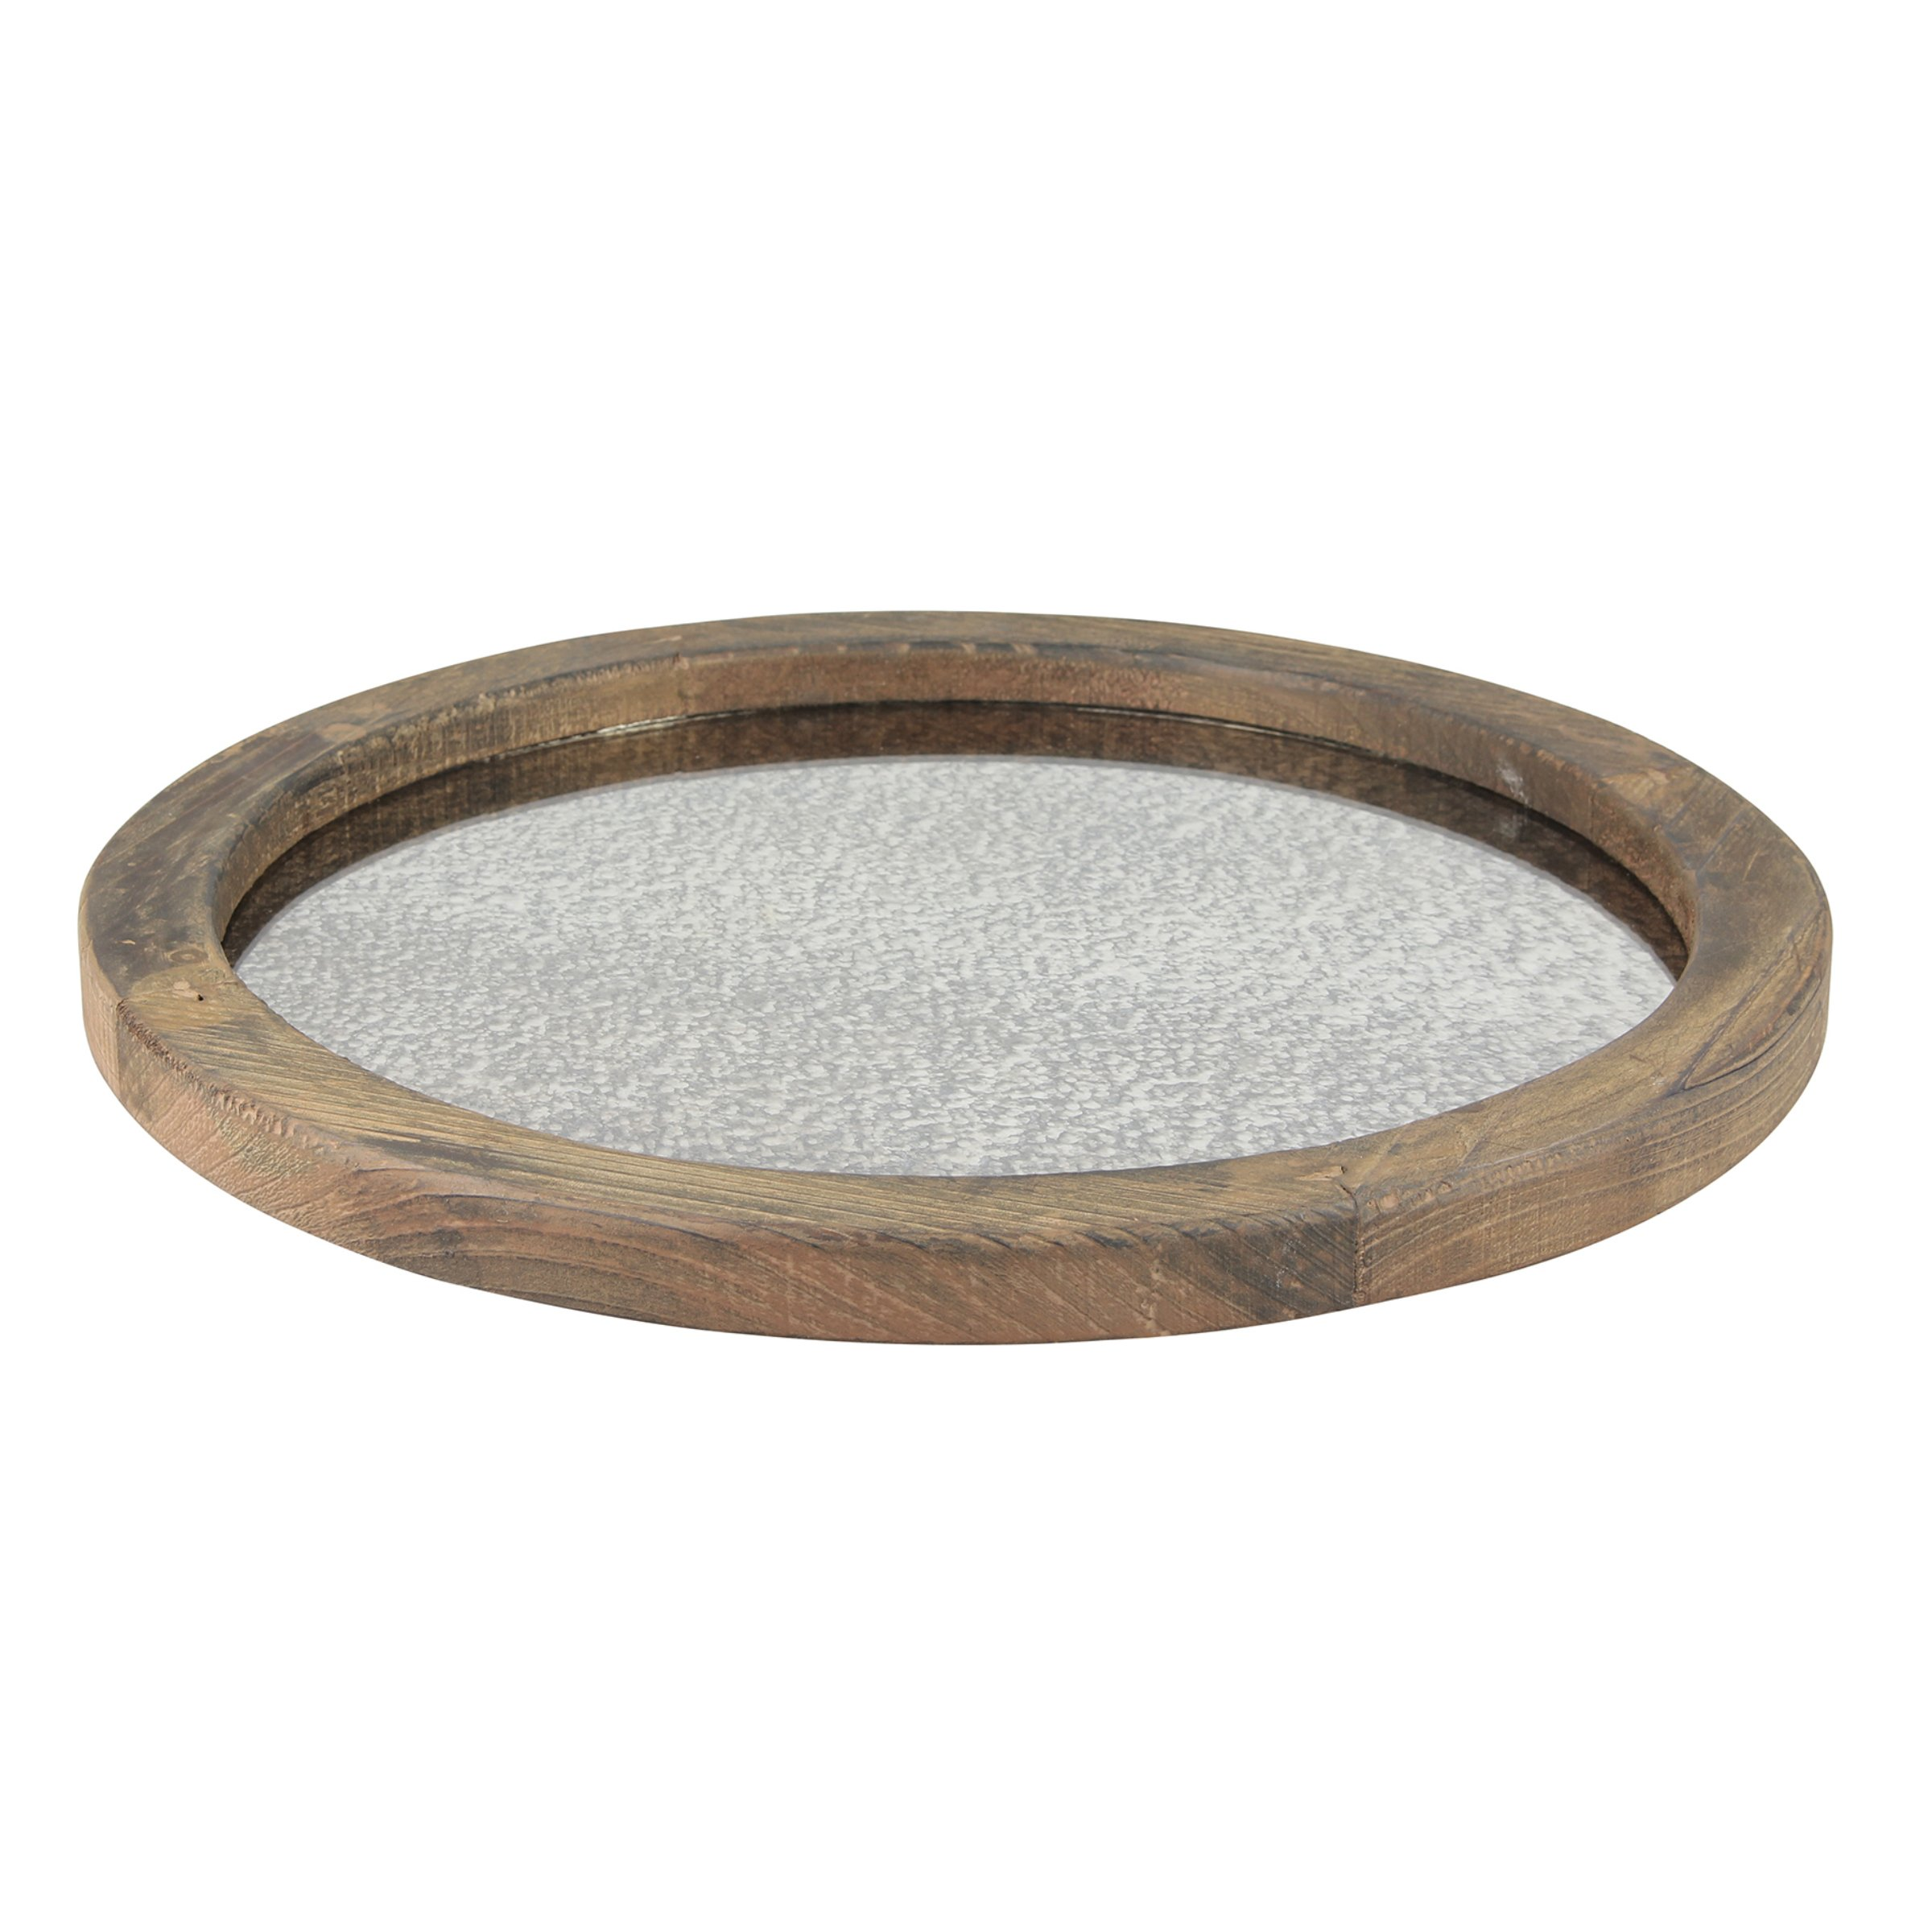 Stonebriar Round Natural Wood Serving Tray with Antique Mirror, Rustic Butler Tray, Unique Coffee Centerpiece for The Coffee Table, Dining Table, or Any Table Top by Stonebriar